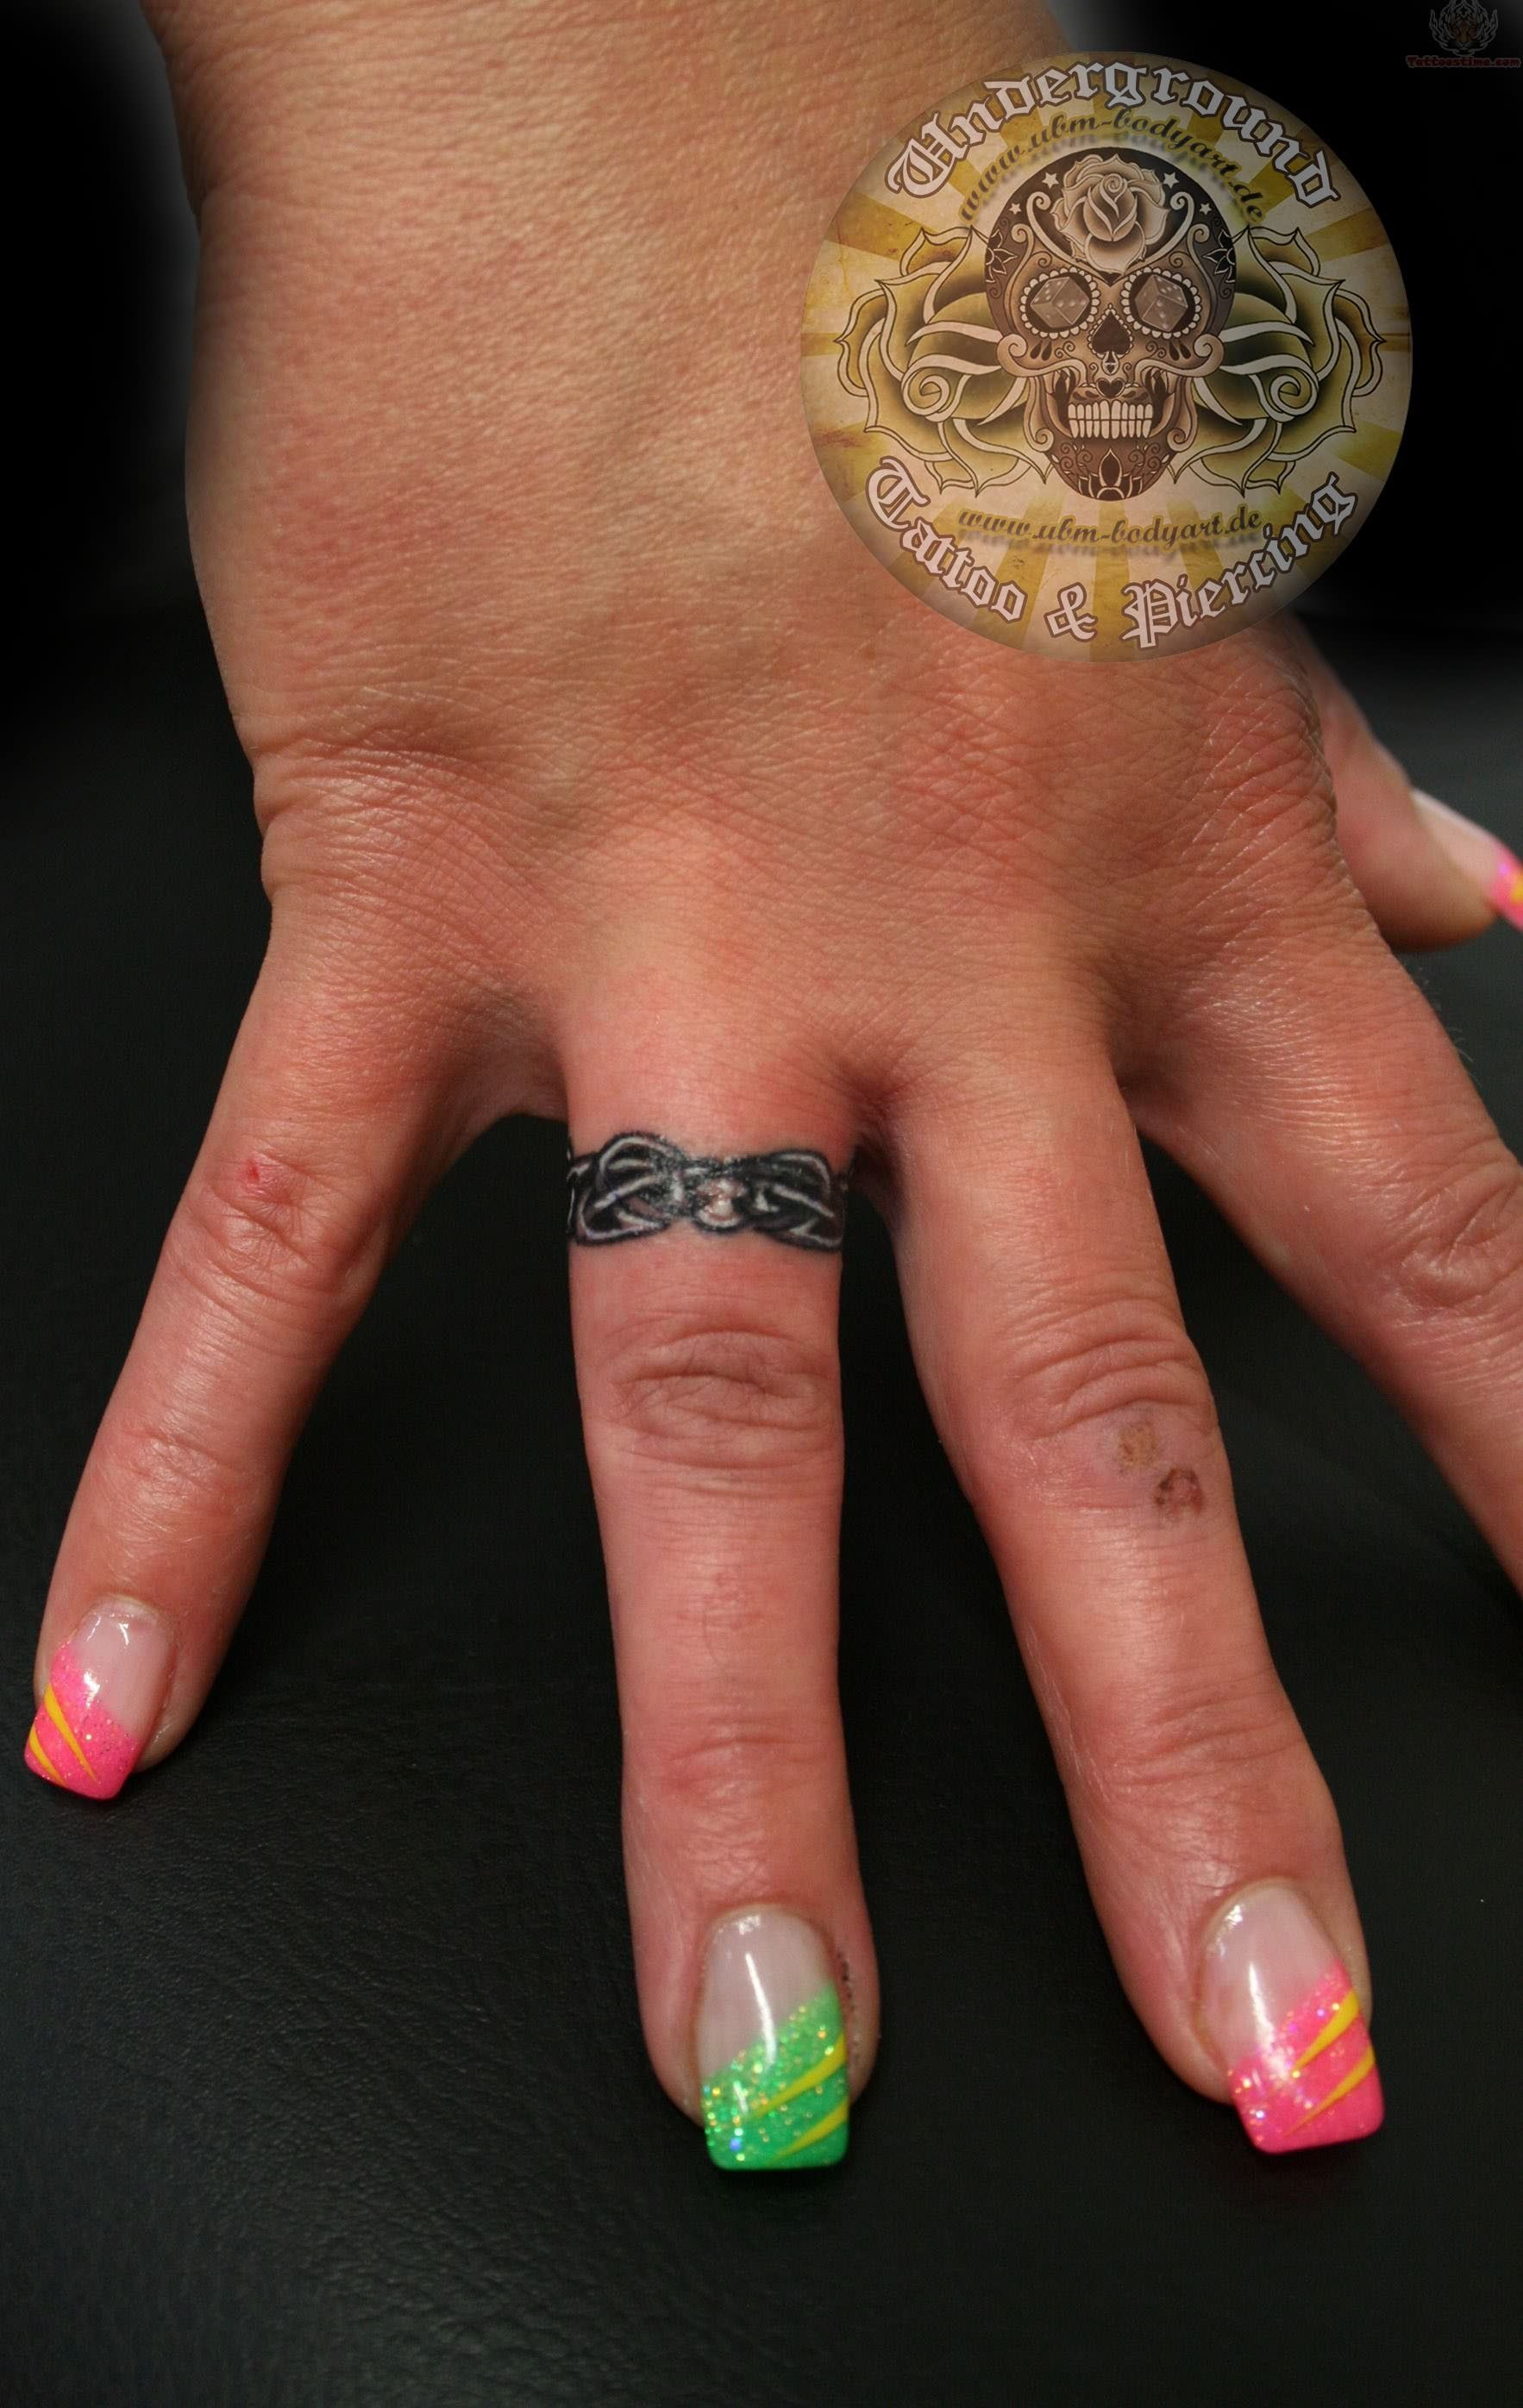 Wedding Ring Tattoo, Great Idea For Guys That Don't Like To Wear Or